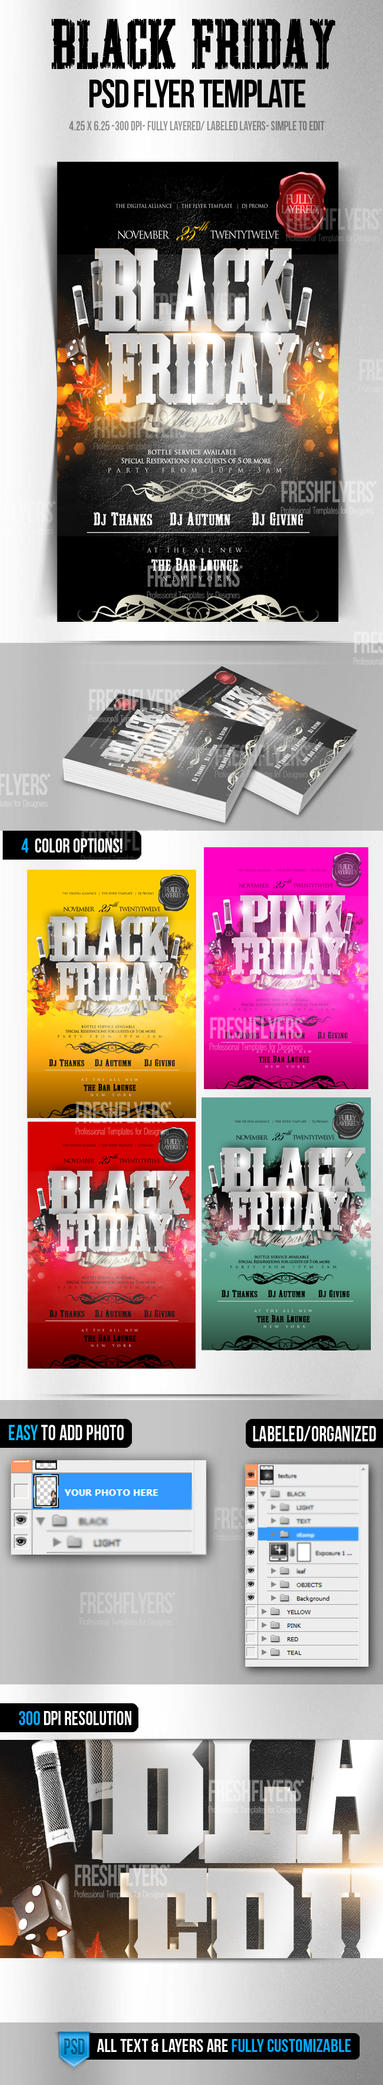 black friday thanksgiving party flyer template by imperialflyers on deviantart. Black Bedroom Furniture Sets. Home Design Ideas